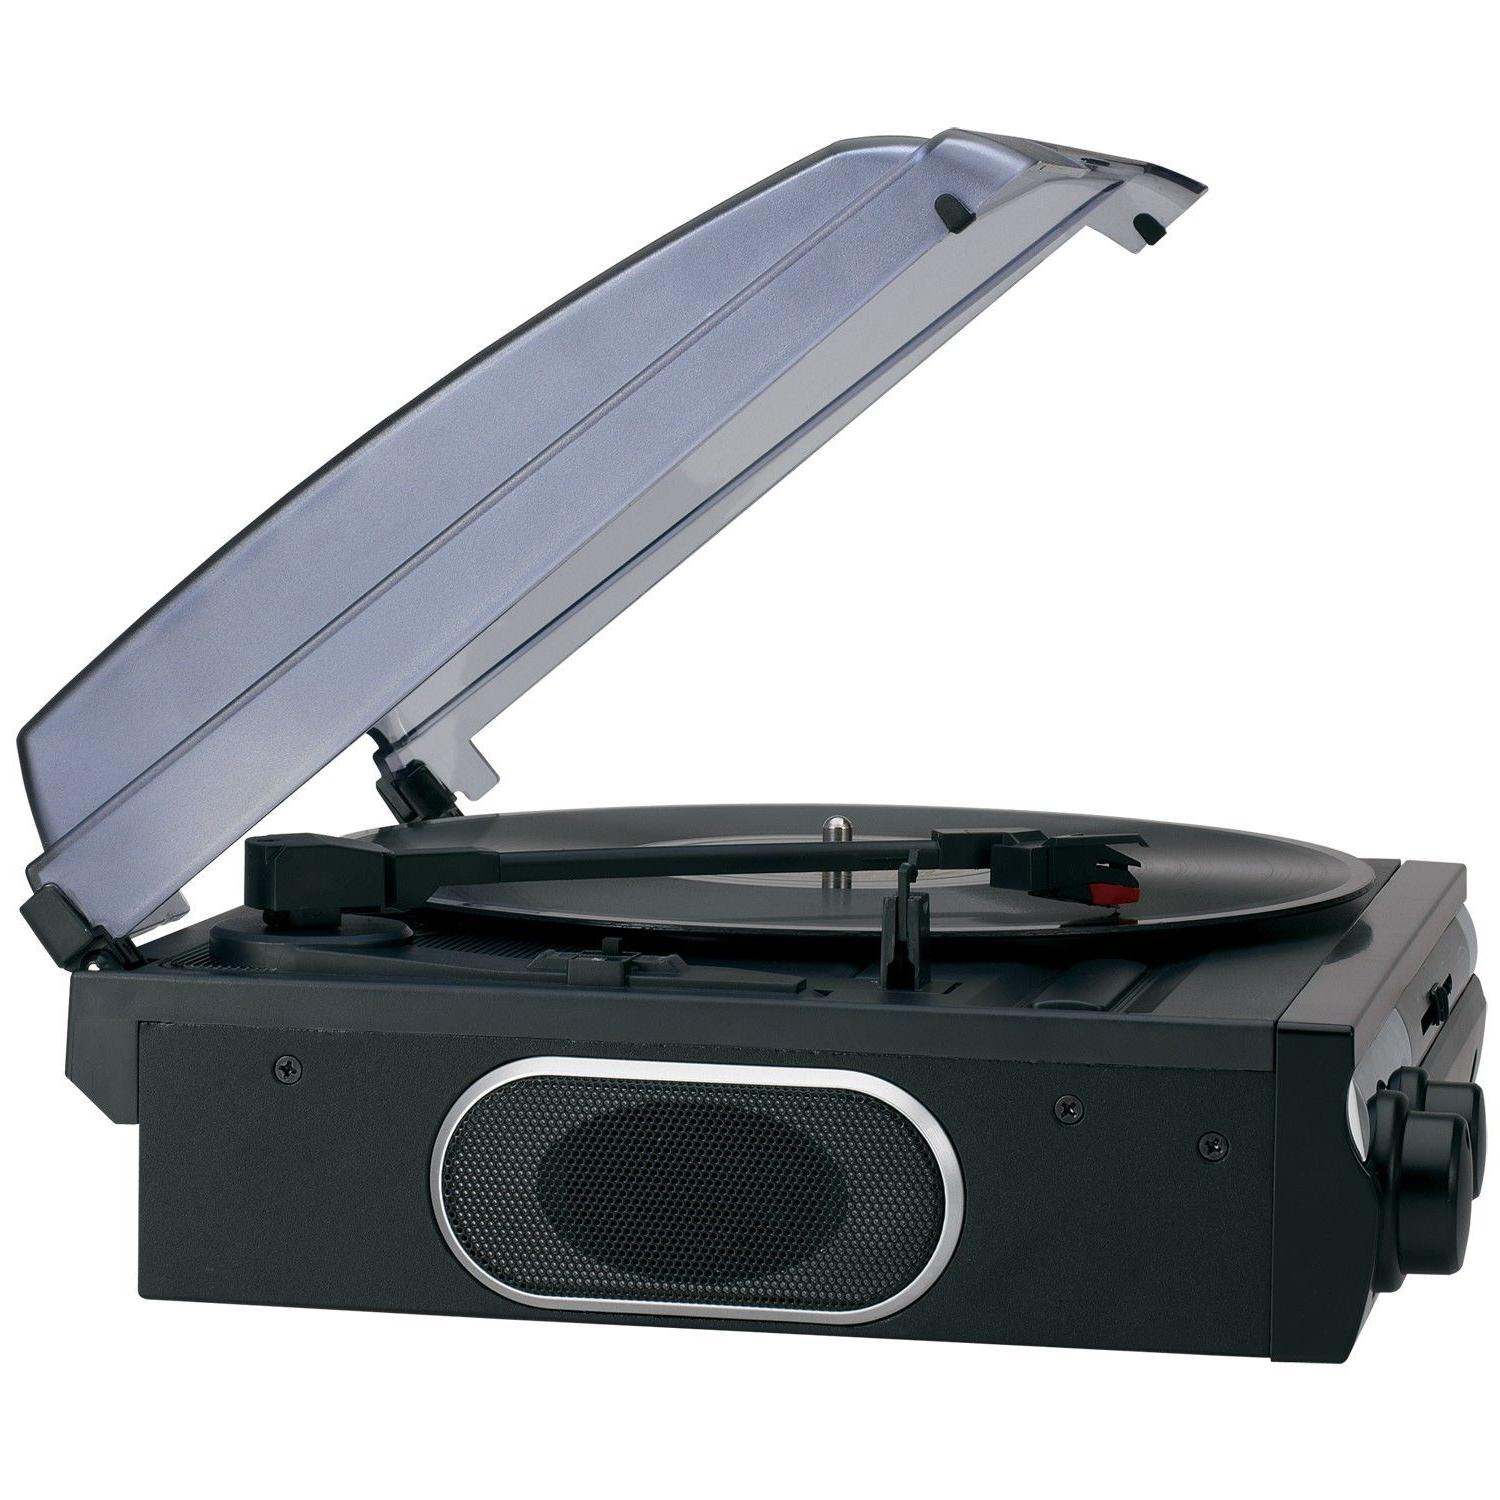 Jensen Stereo Record with